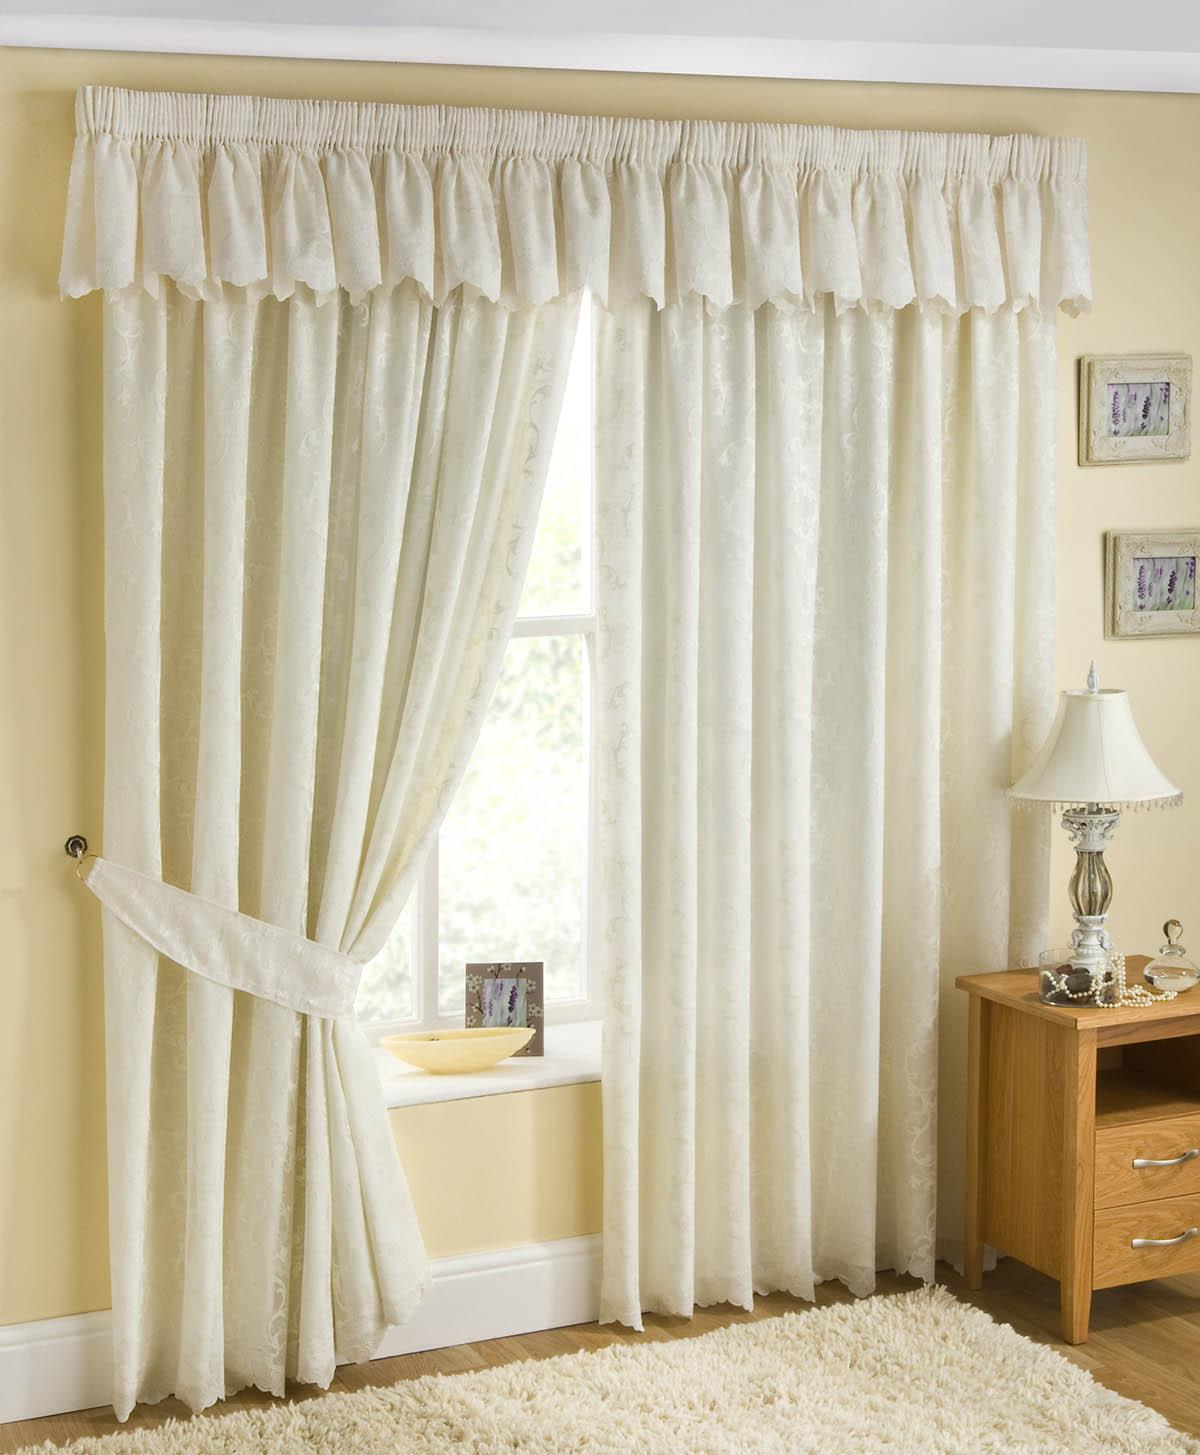 Perth Lined Voile Ready Made Curtain